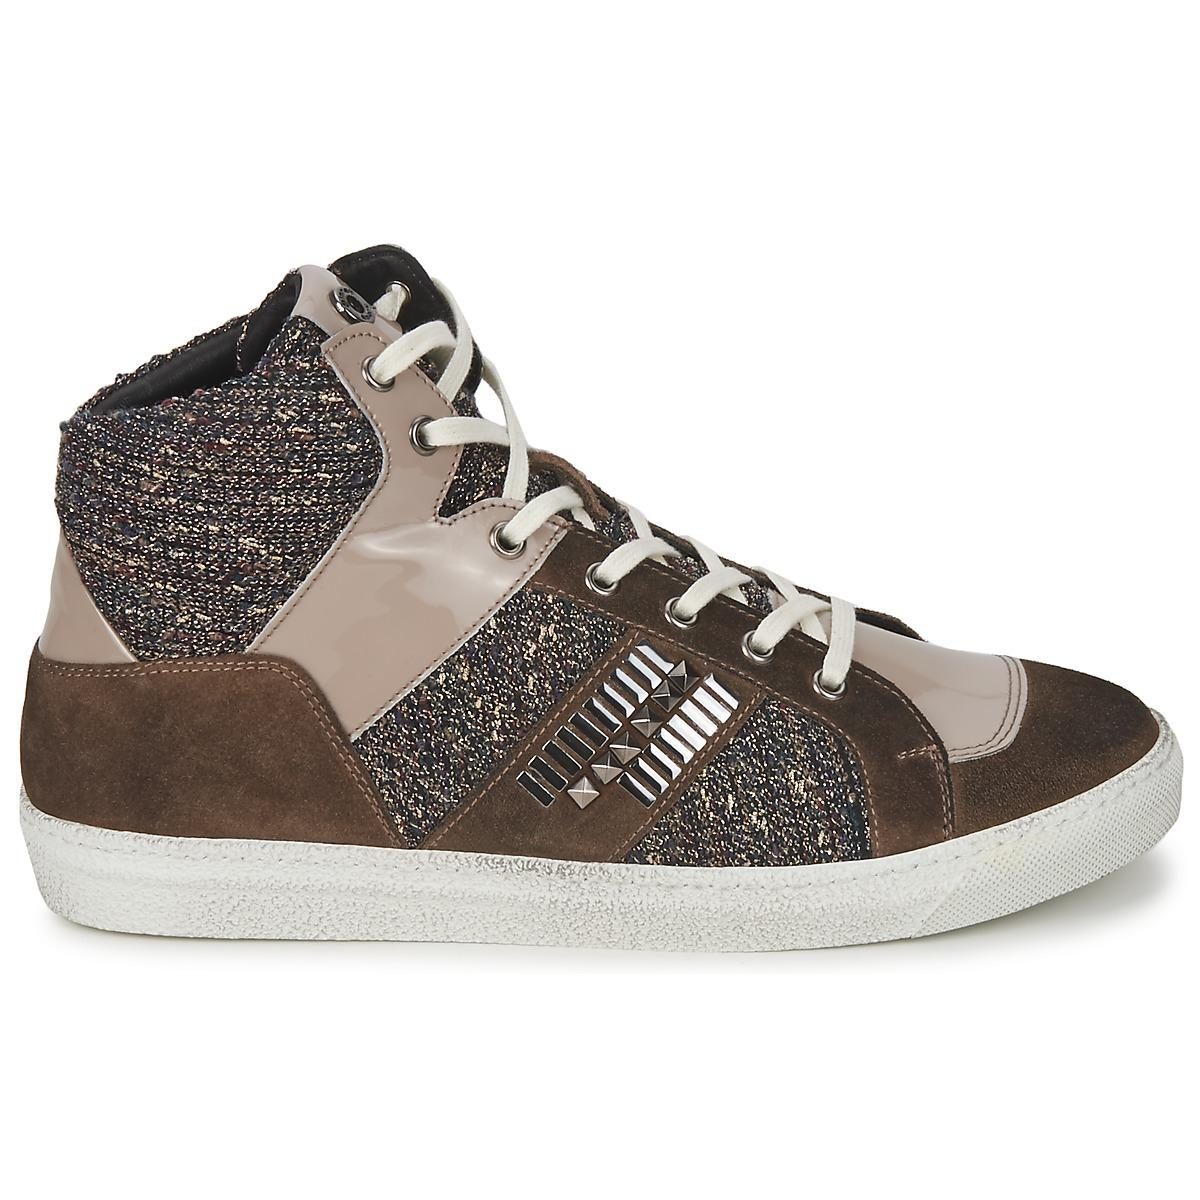 Janet & Janet Leather Ericmartin Women's Shoes (high-top Trainers) In Brown